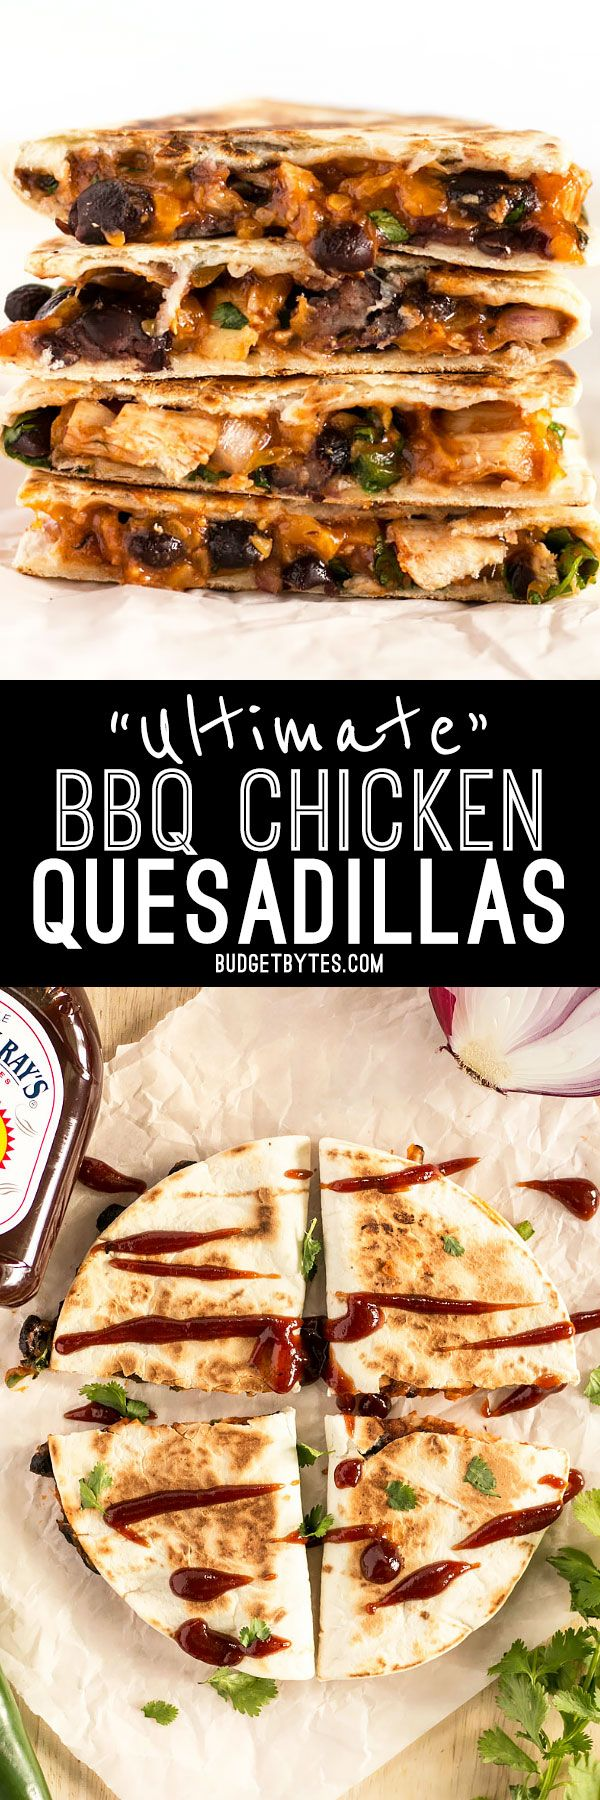 These Ultimate BBQ Chicken Quesadillas are packed with colorful ingredients and deliciously tangy Sweet Baby Ray's BBQ sauce! #ad BudgetBytes.com